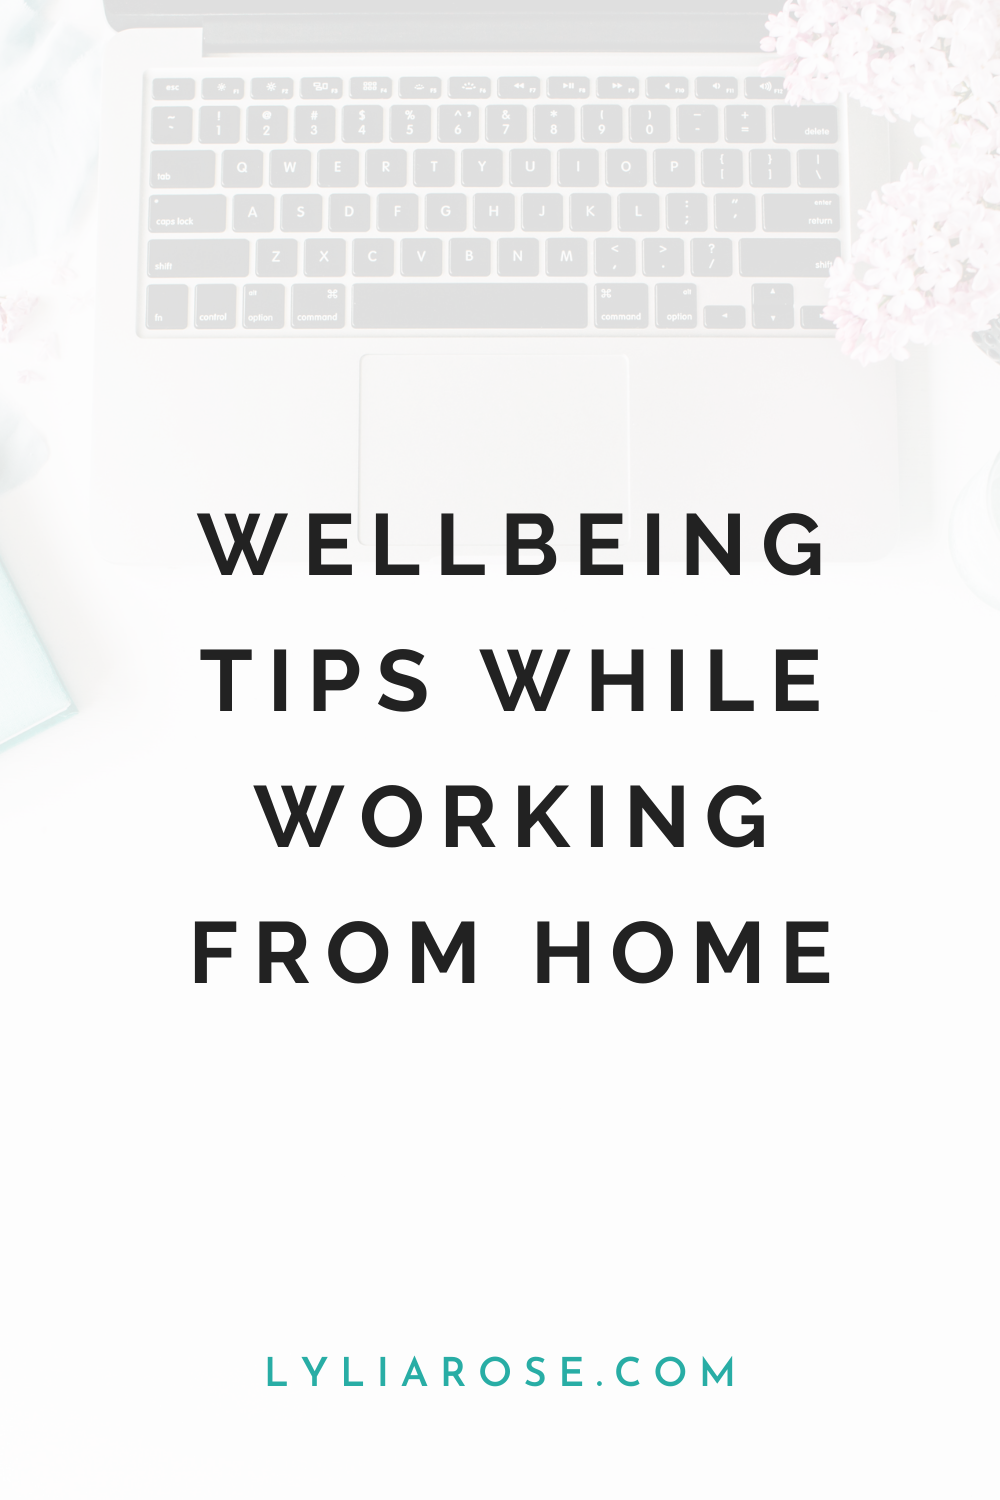 Wellbeing tips while working from home